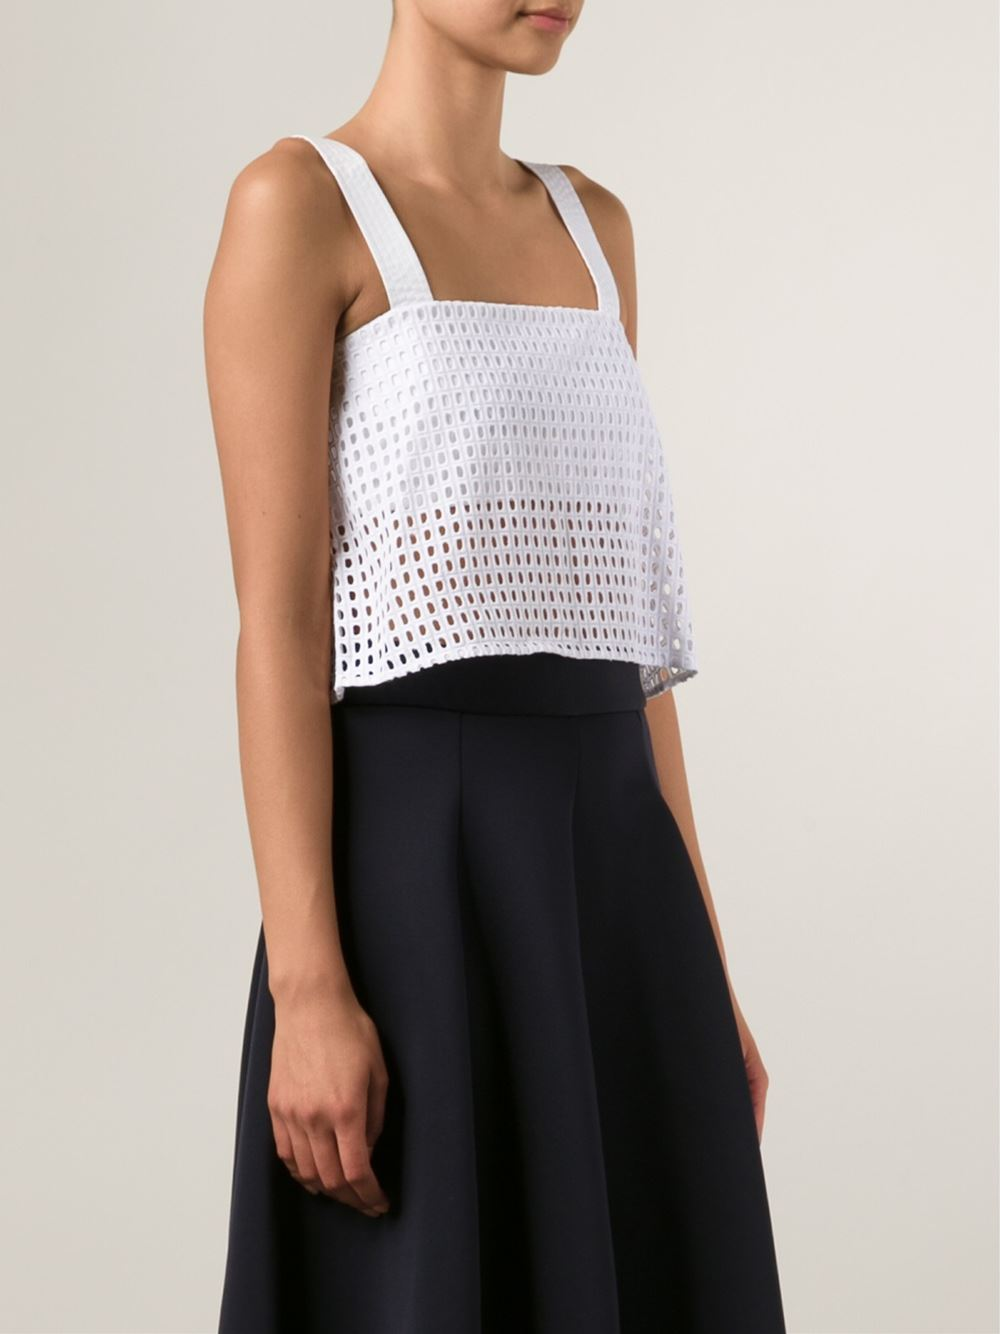 3.1 Phillip Lim cropped perforated tank top